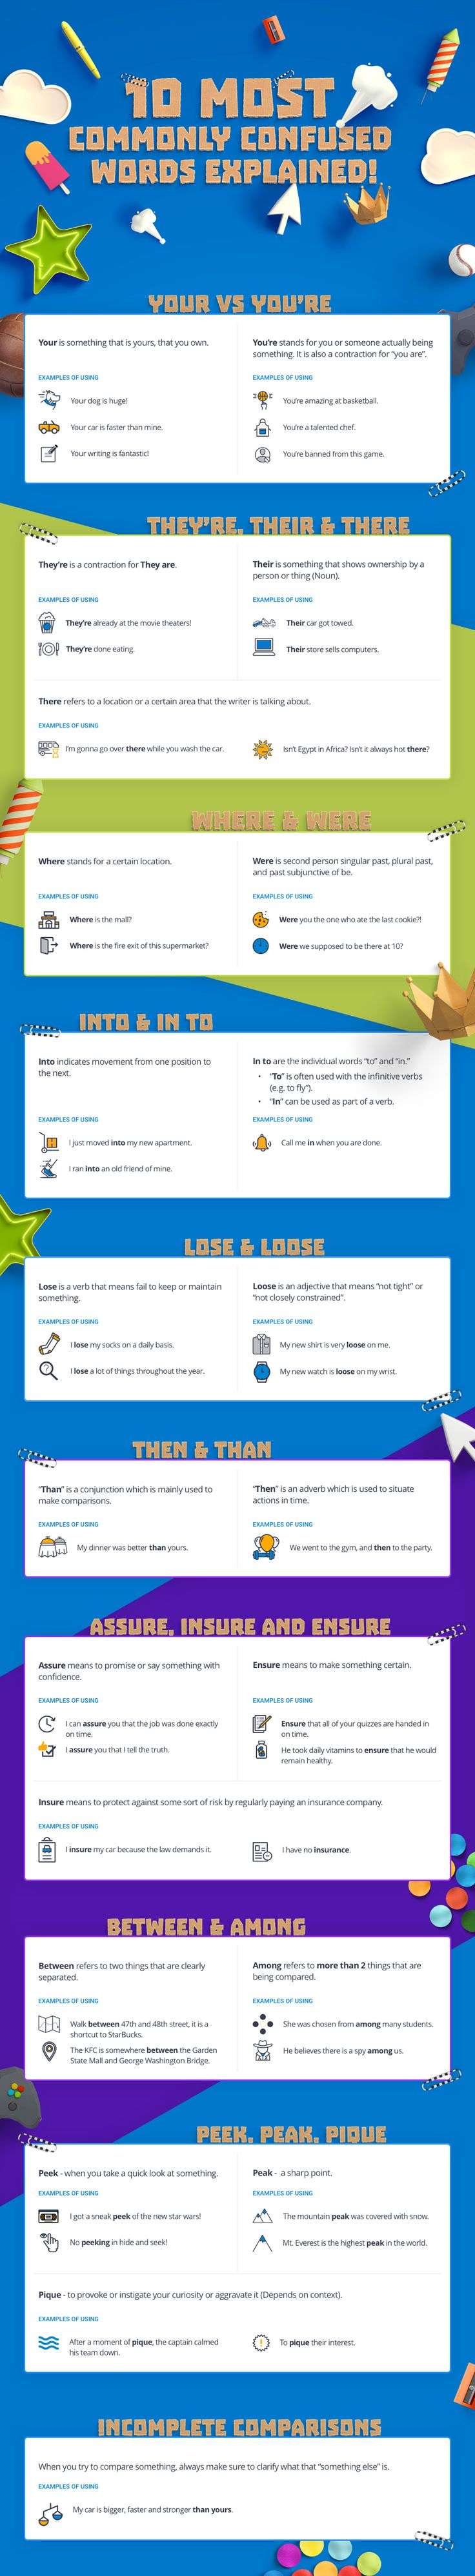 001 10 Most Commonly Confused Words Explained Infographic